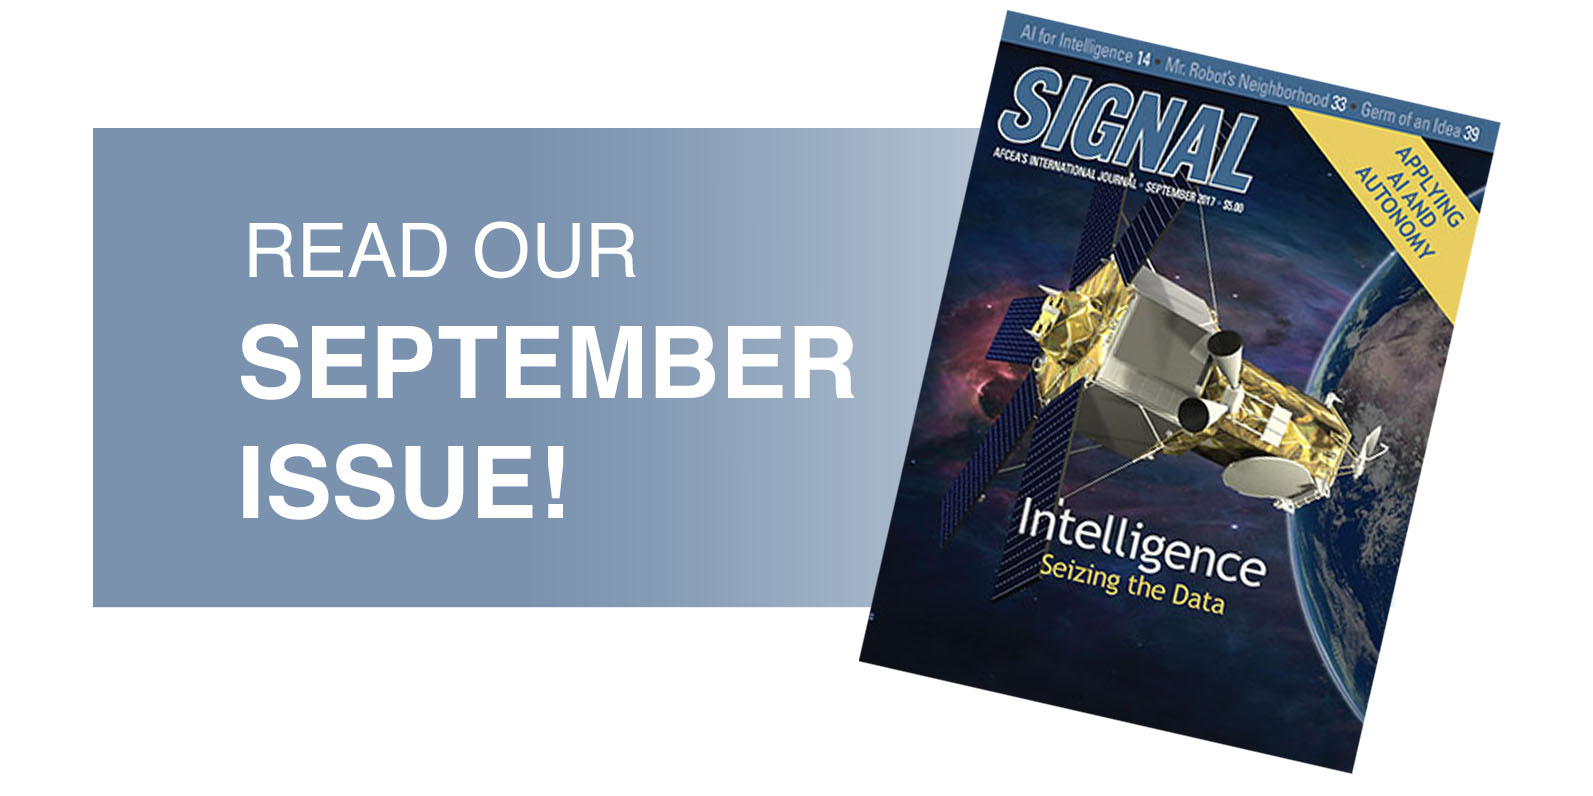 SIGNAL September Issue